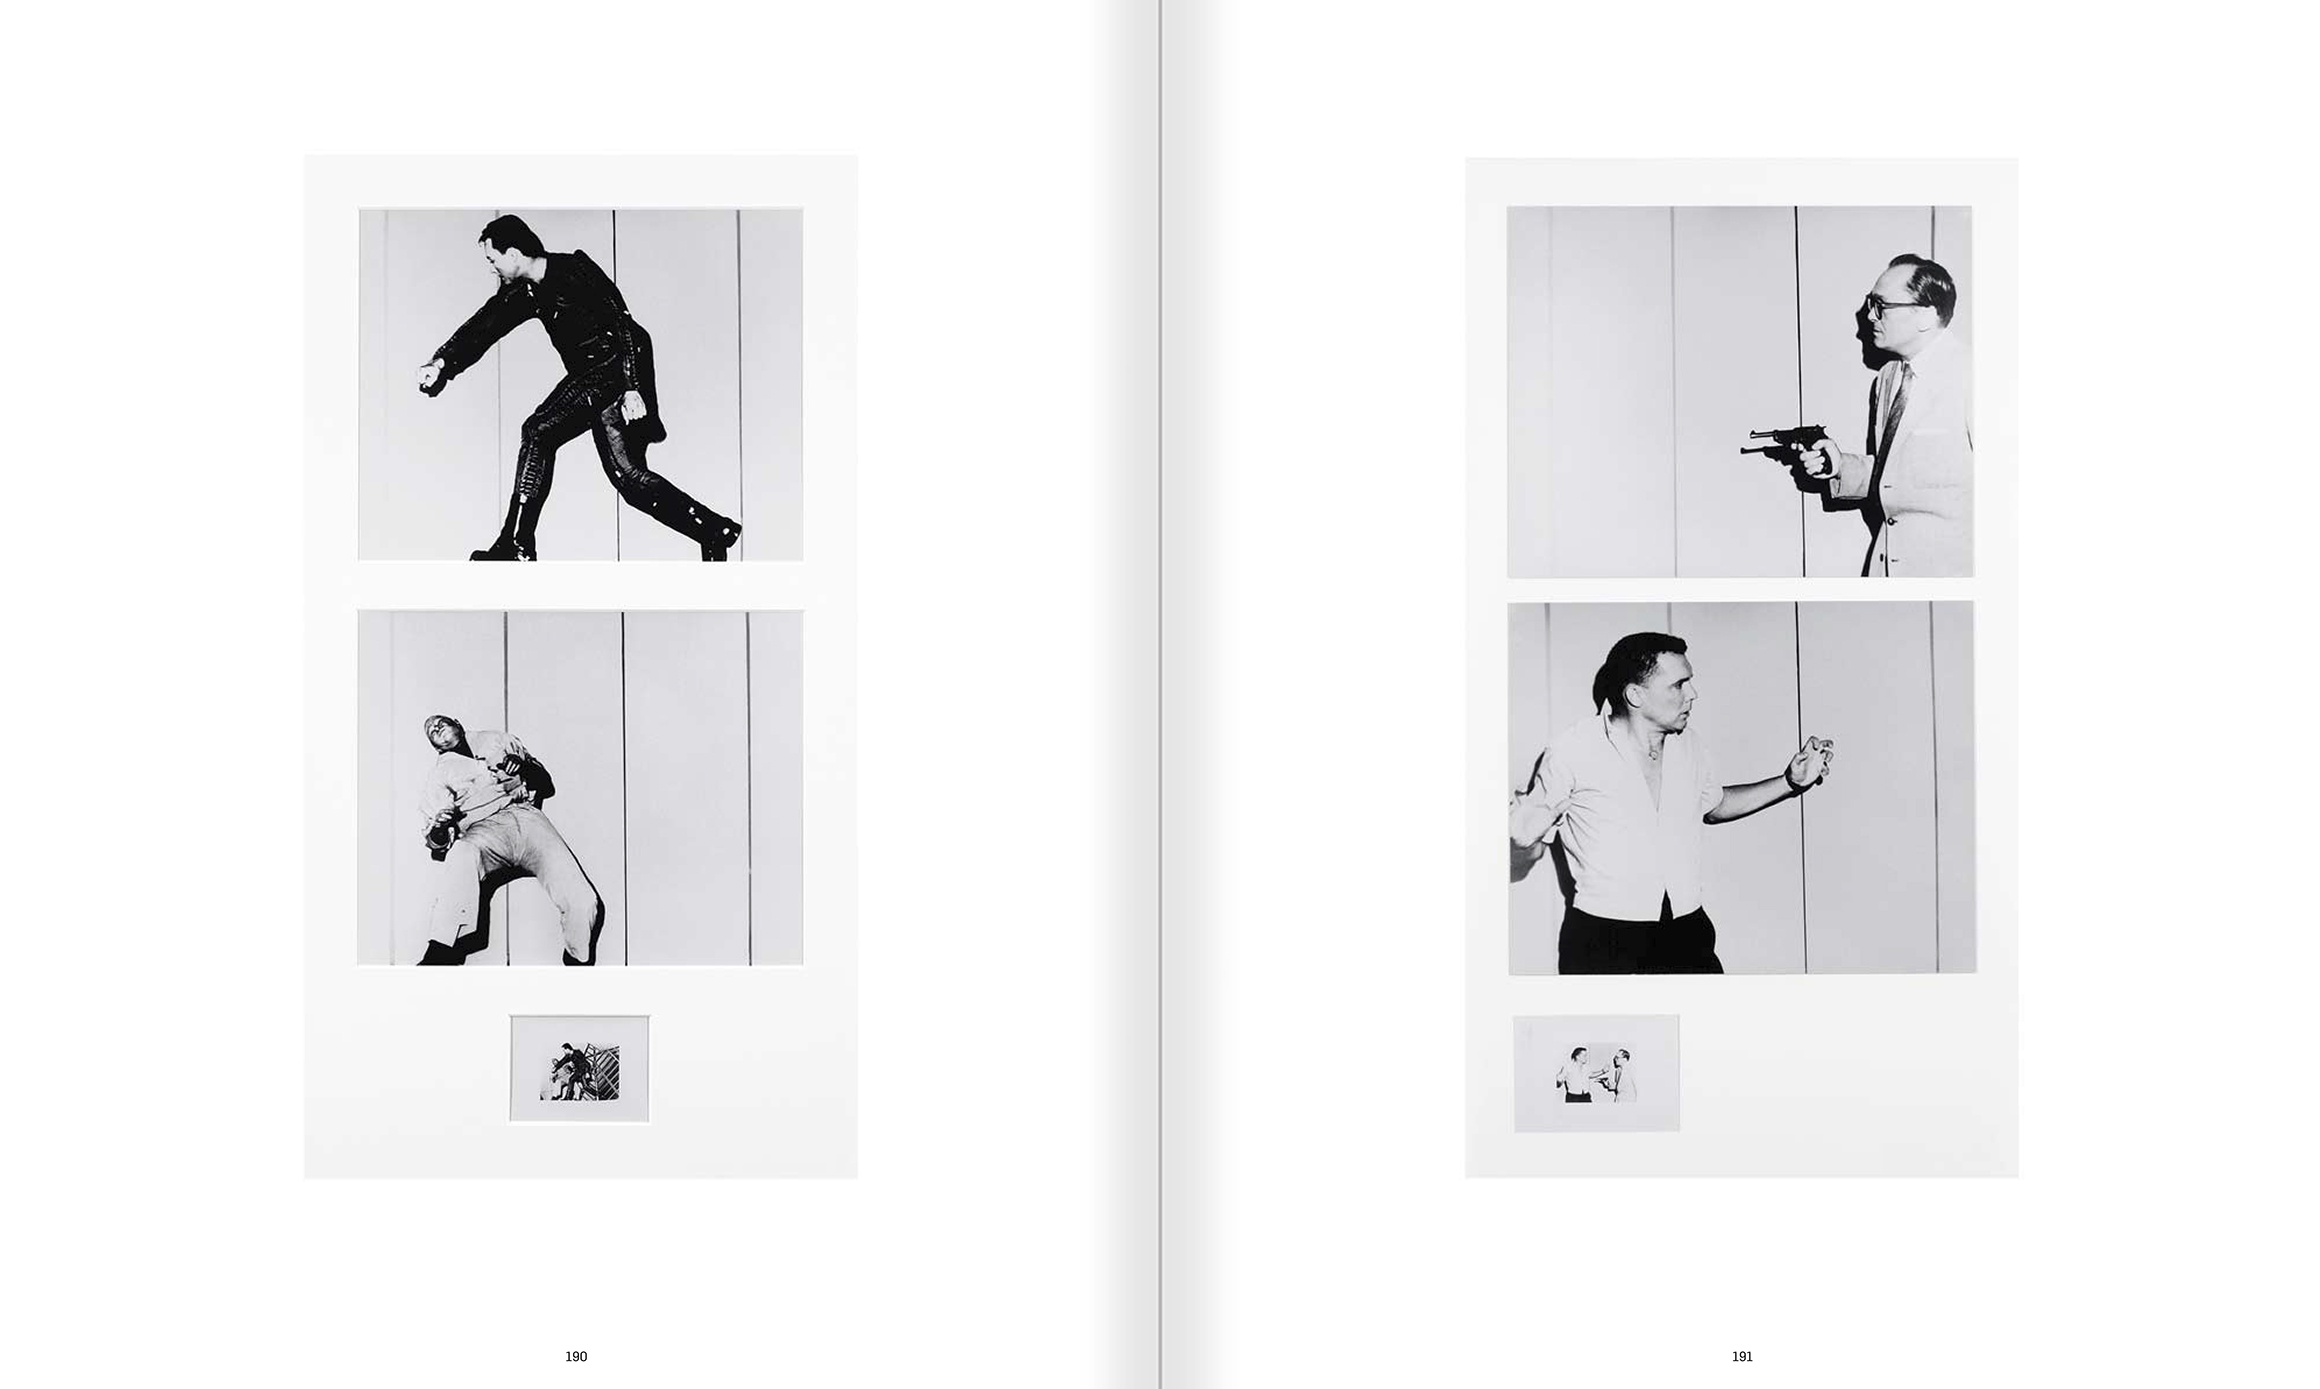 Selection from the catalogue 'John Baldessari. Pure Beauty', pages 190 and 191